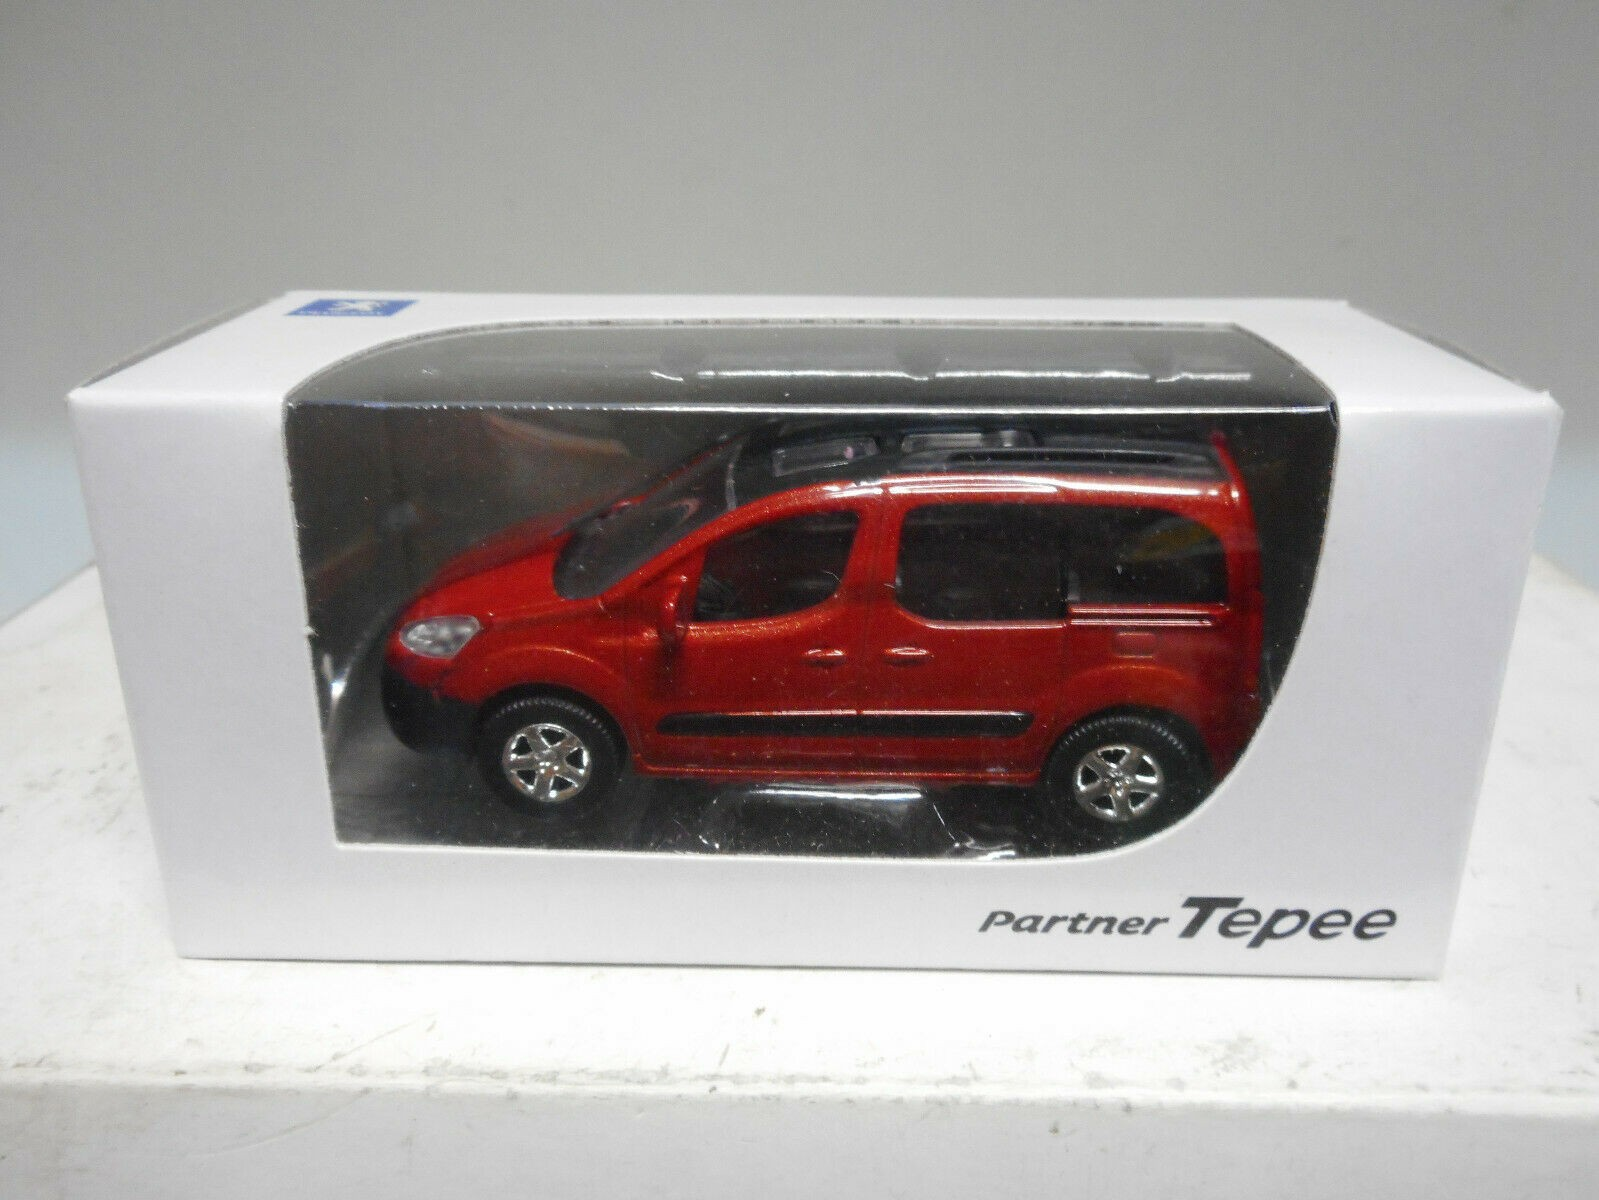 PEUGEOT PARTNER TEPEE PANEL COMBI NOREV 3 INCHES